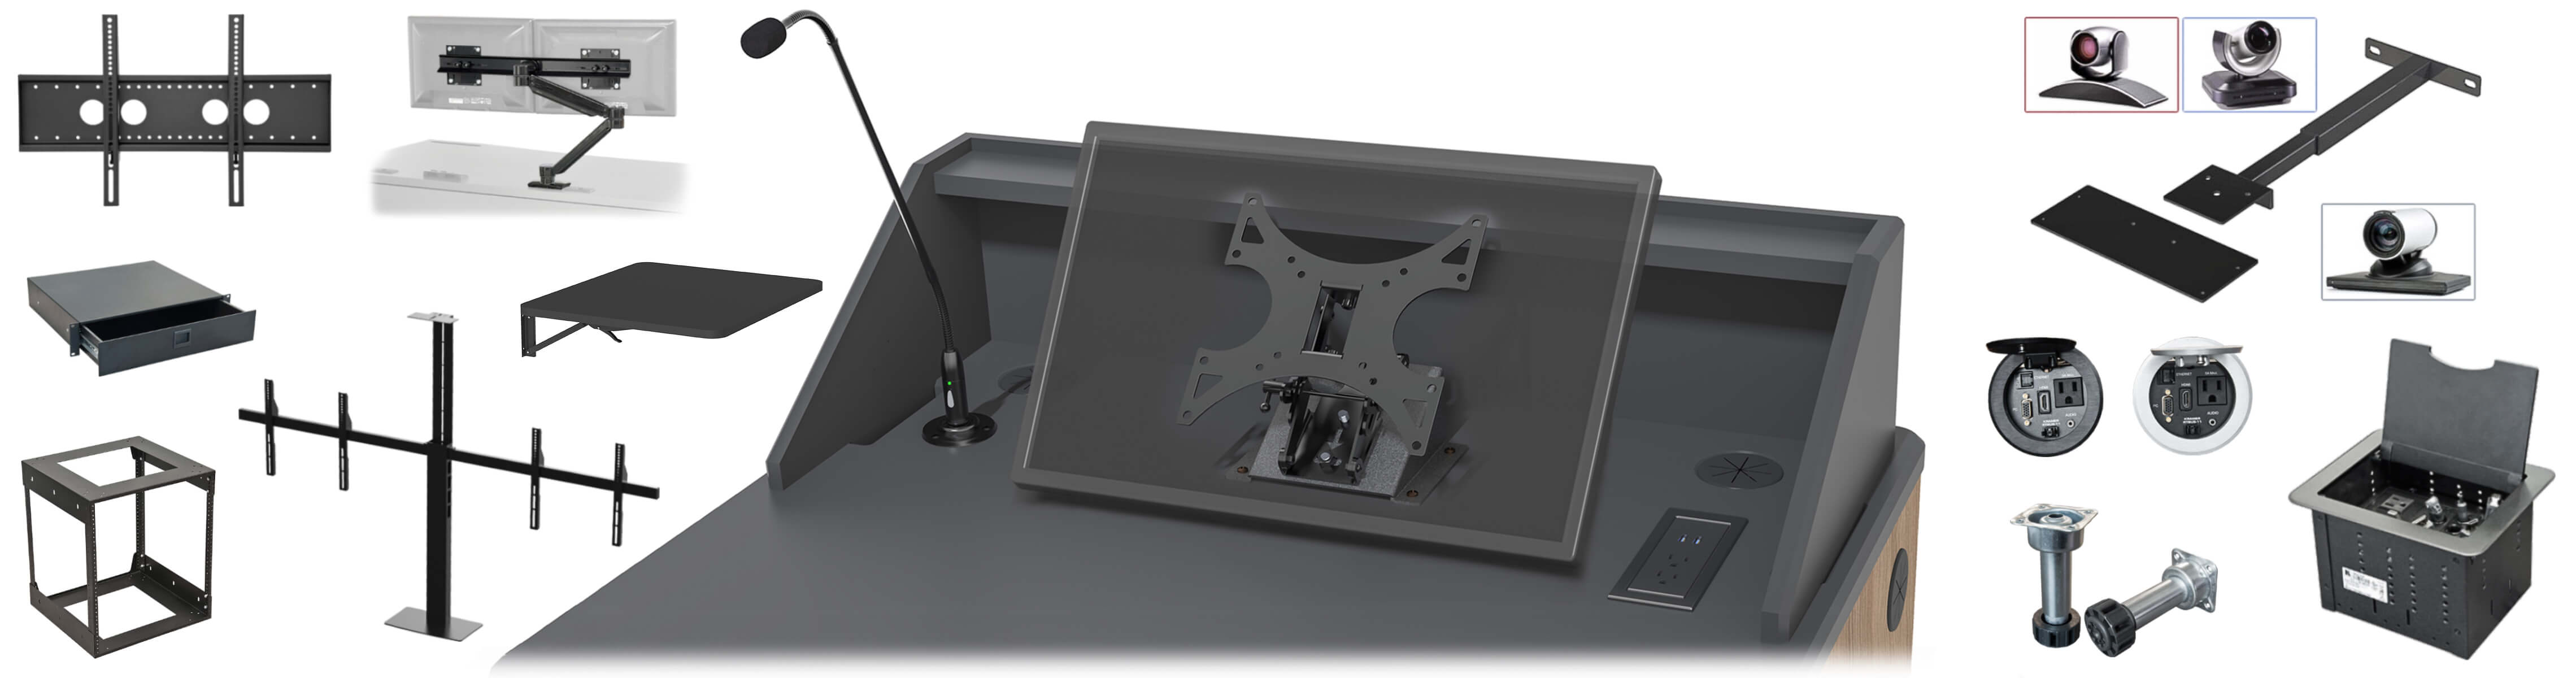 Stands & Mounts Options